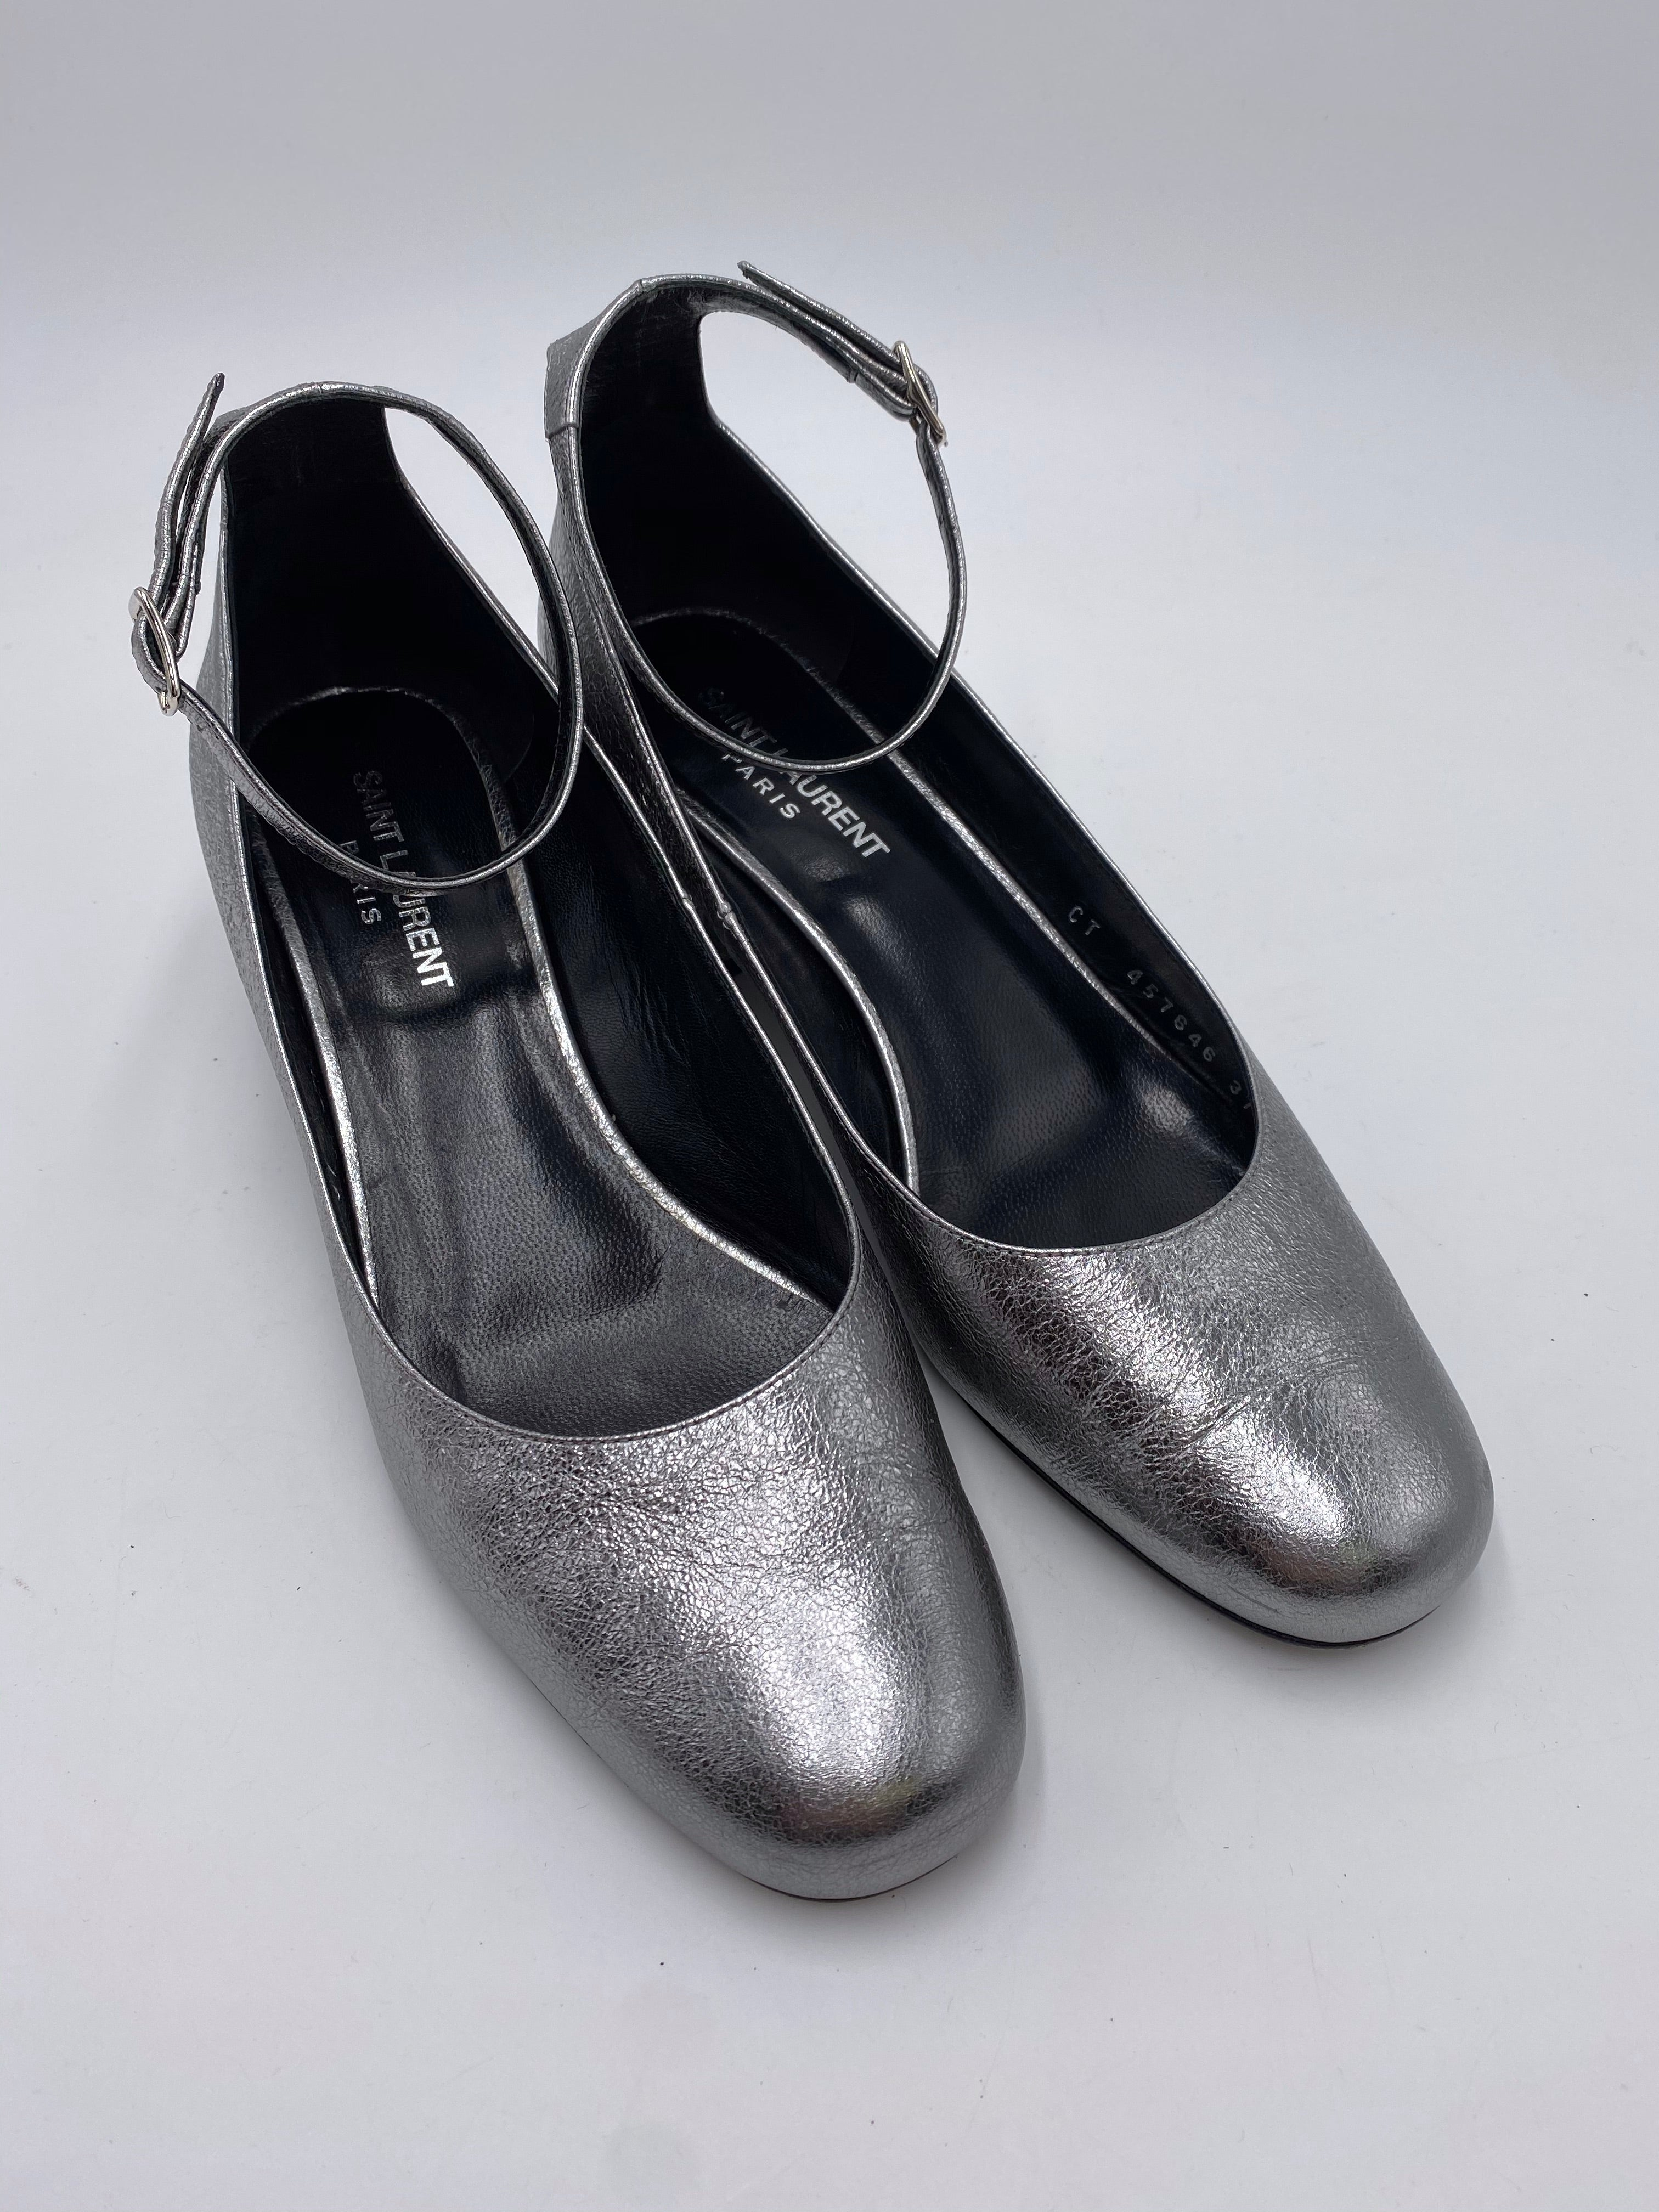 Saint Laurent Silver Metallic Leather Ankle Strap Heels